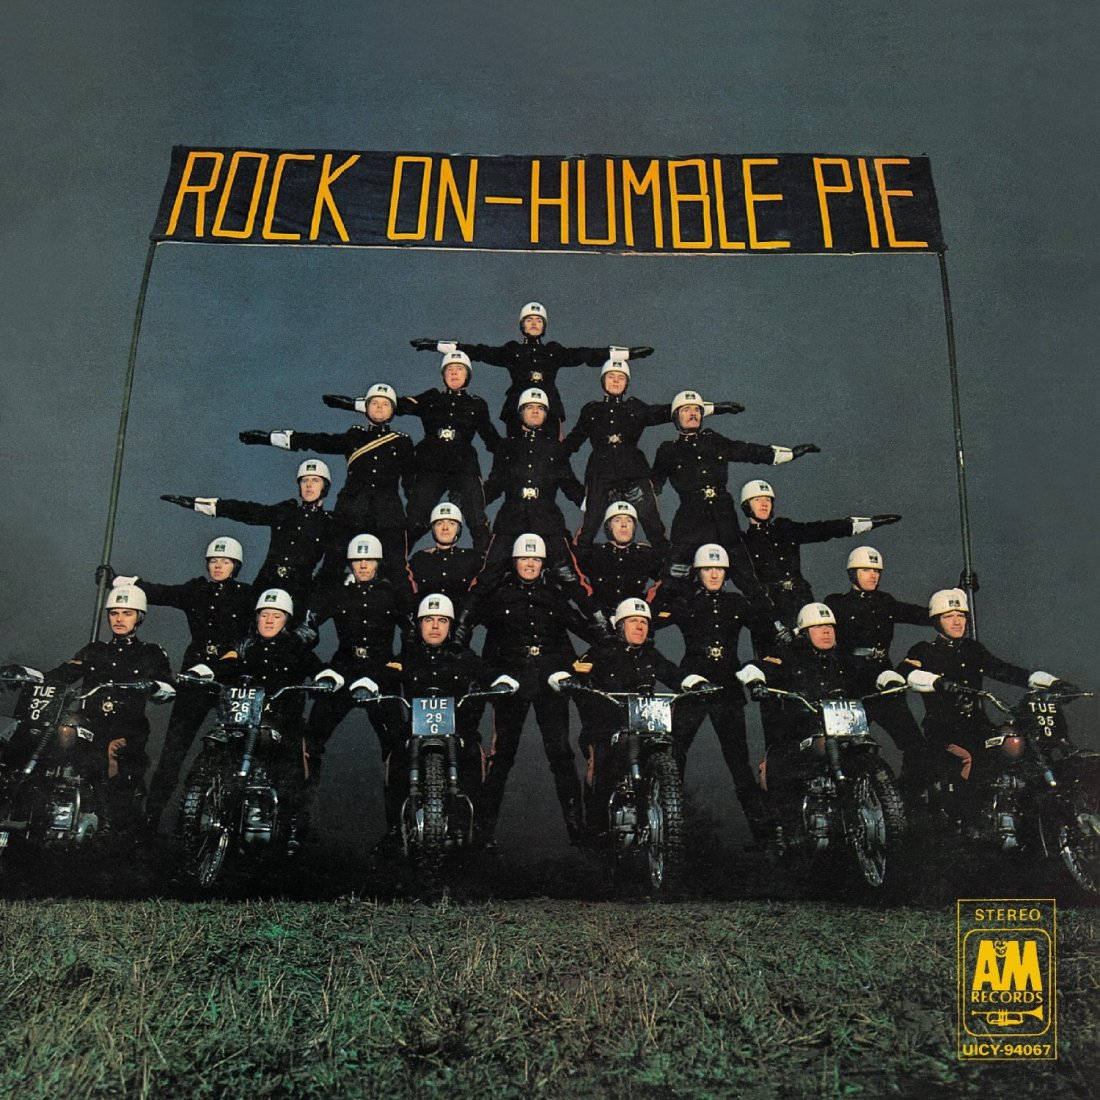 Humble_Pie_Rock_On